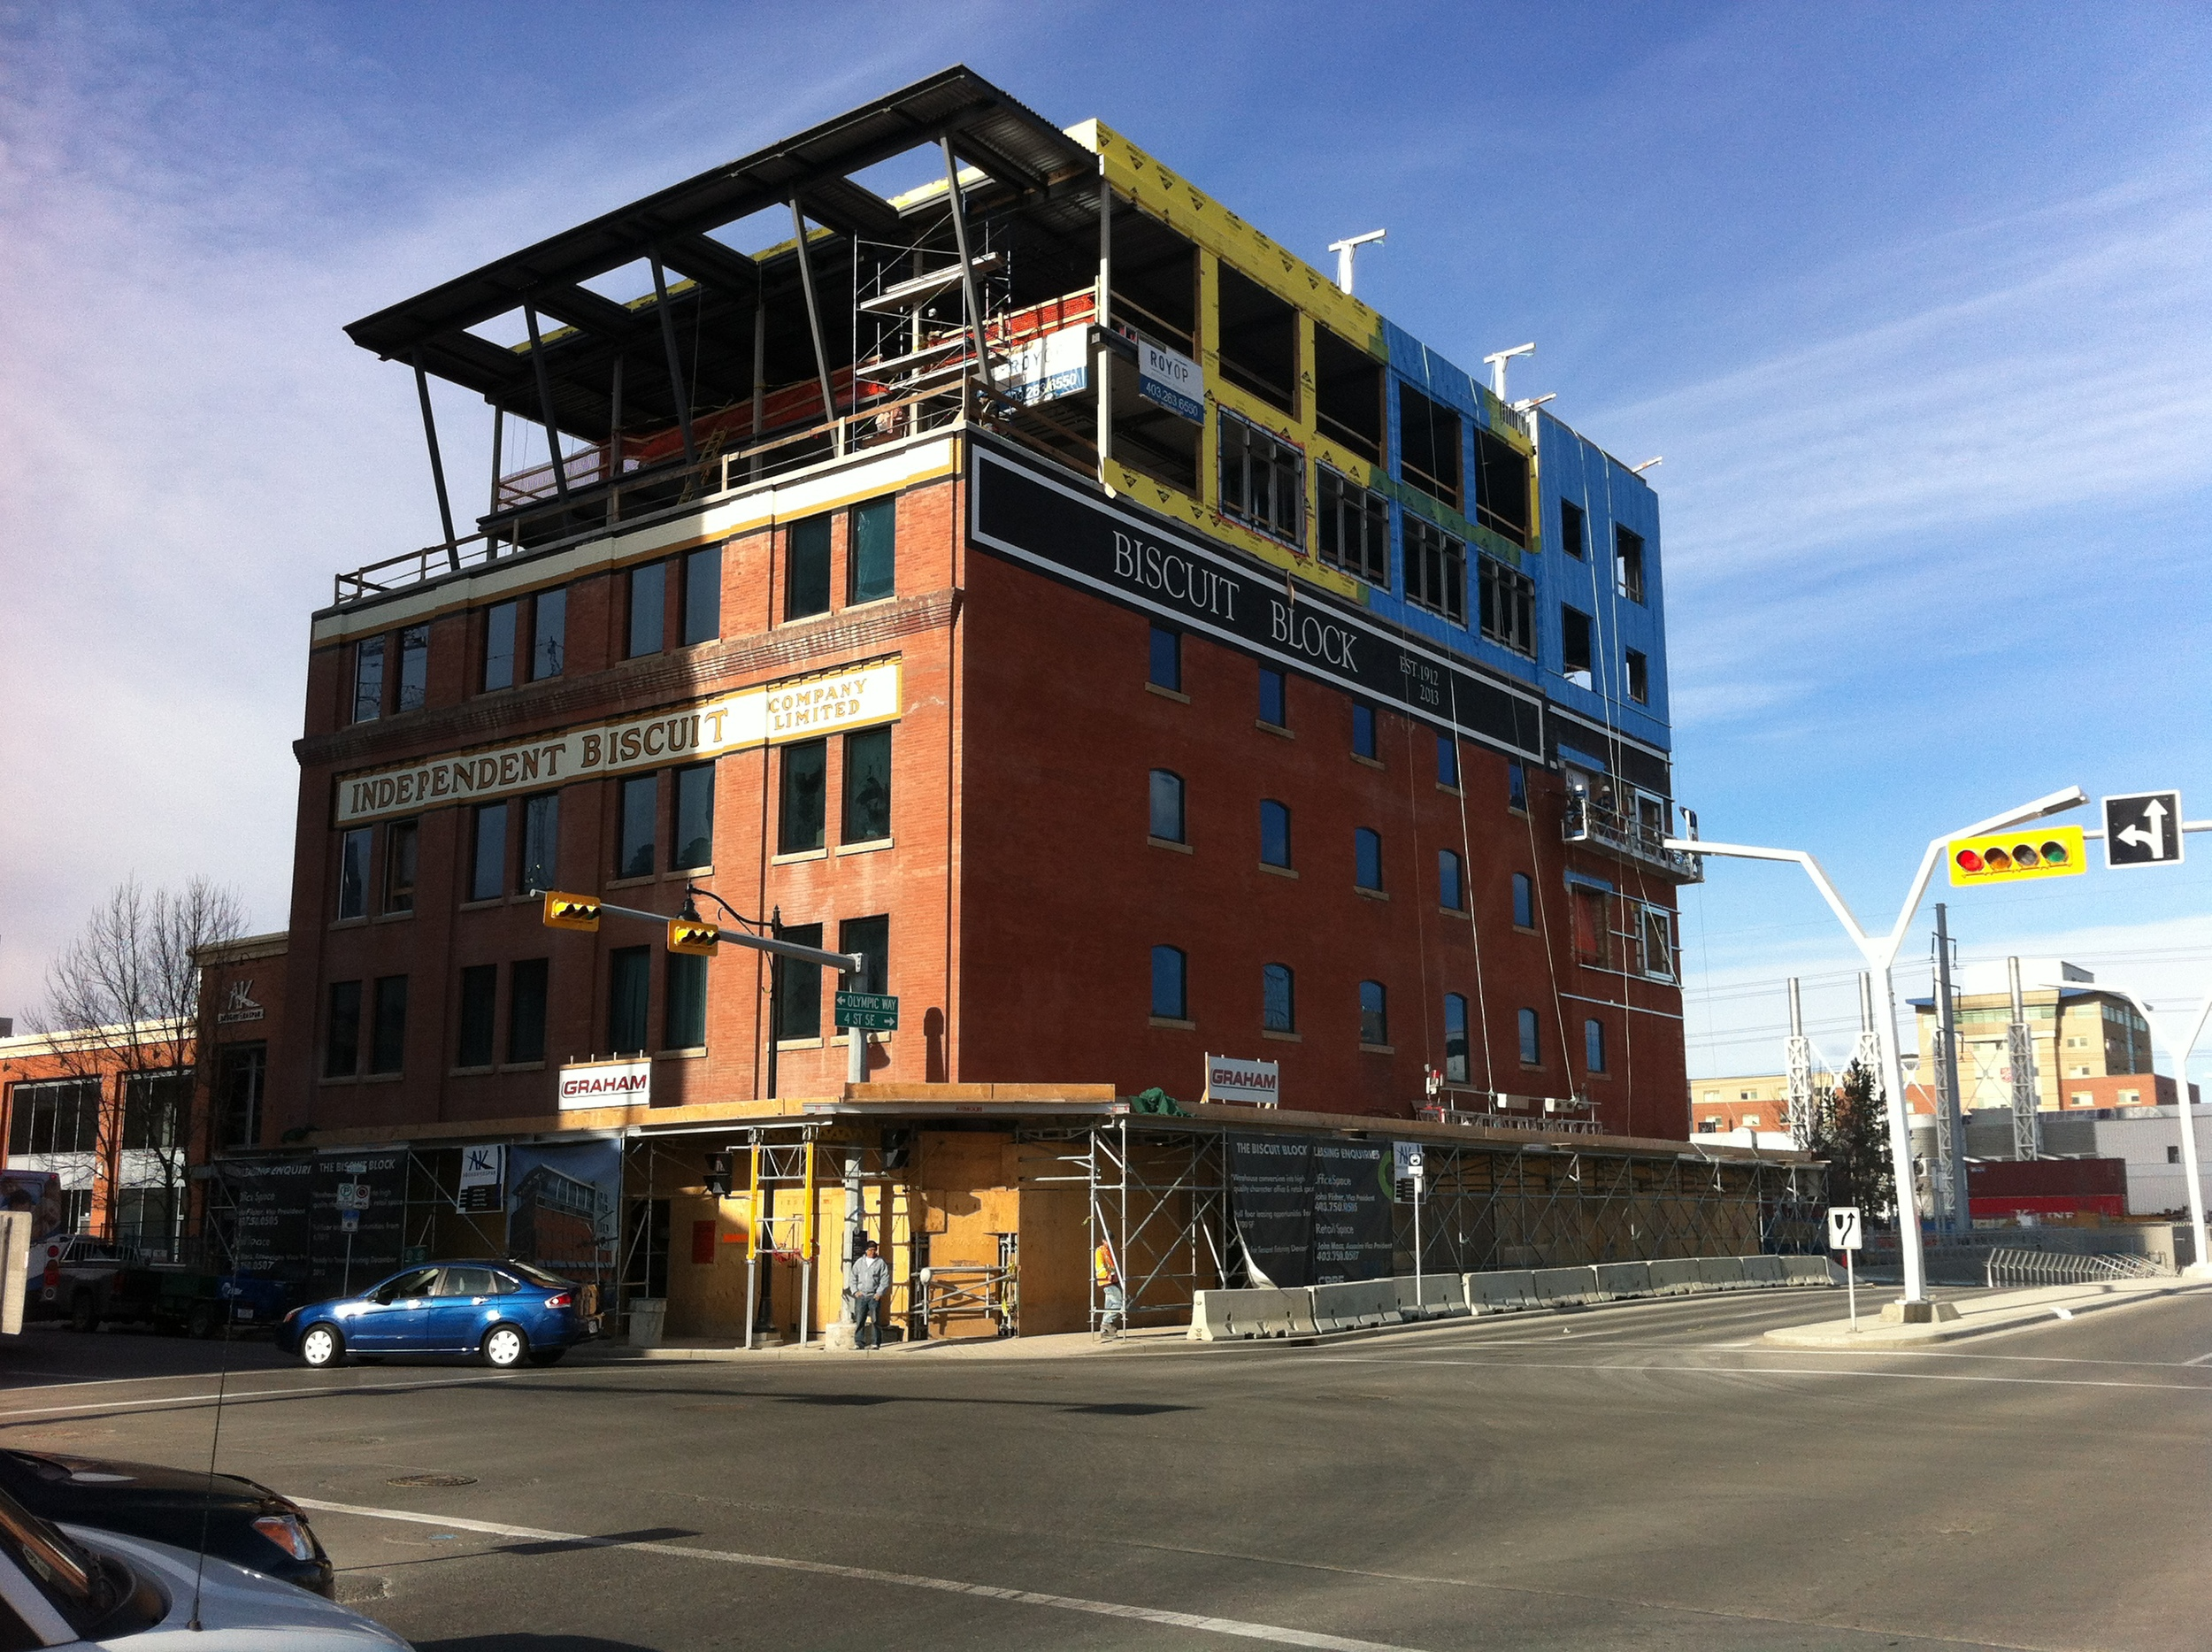 The Beltline's warehouse district is getting a major makeover with old buildings being renovated and expanded and new ones being built. What hipster wouldn't want to work in the Biscuit Block?